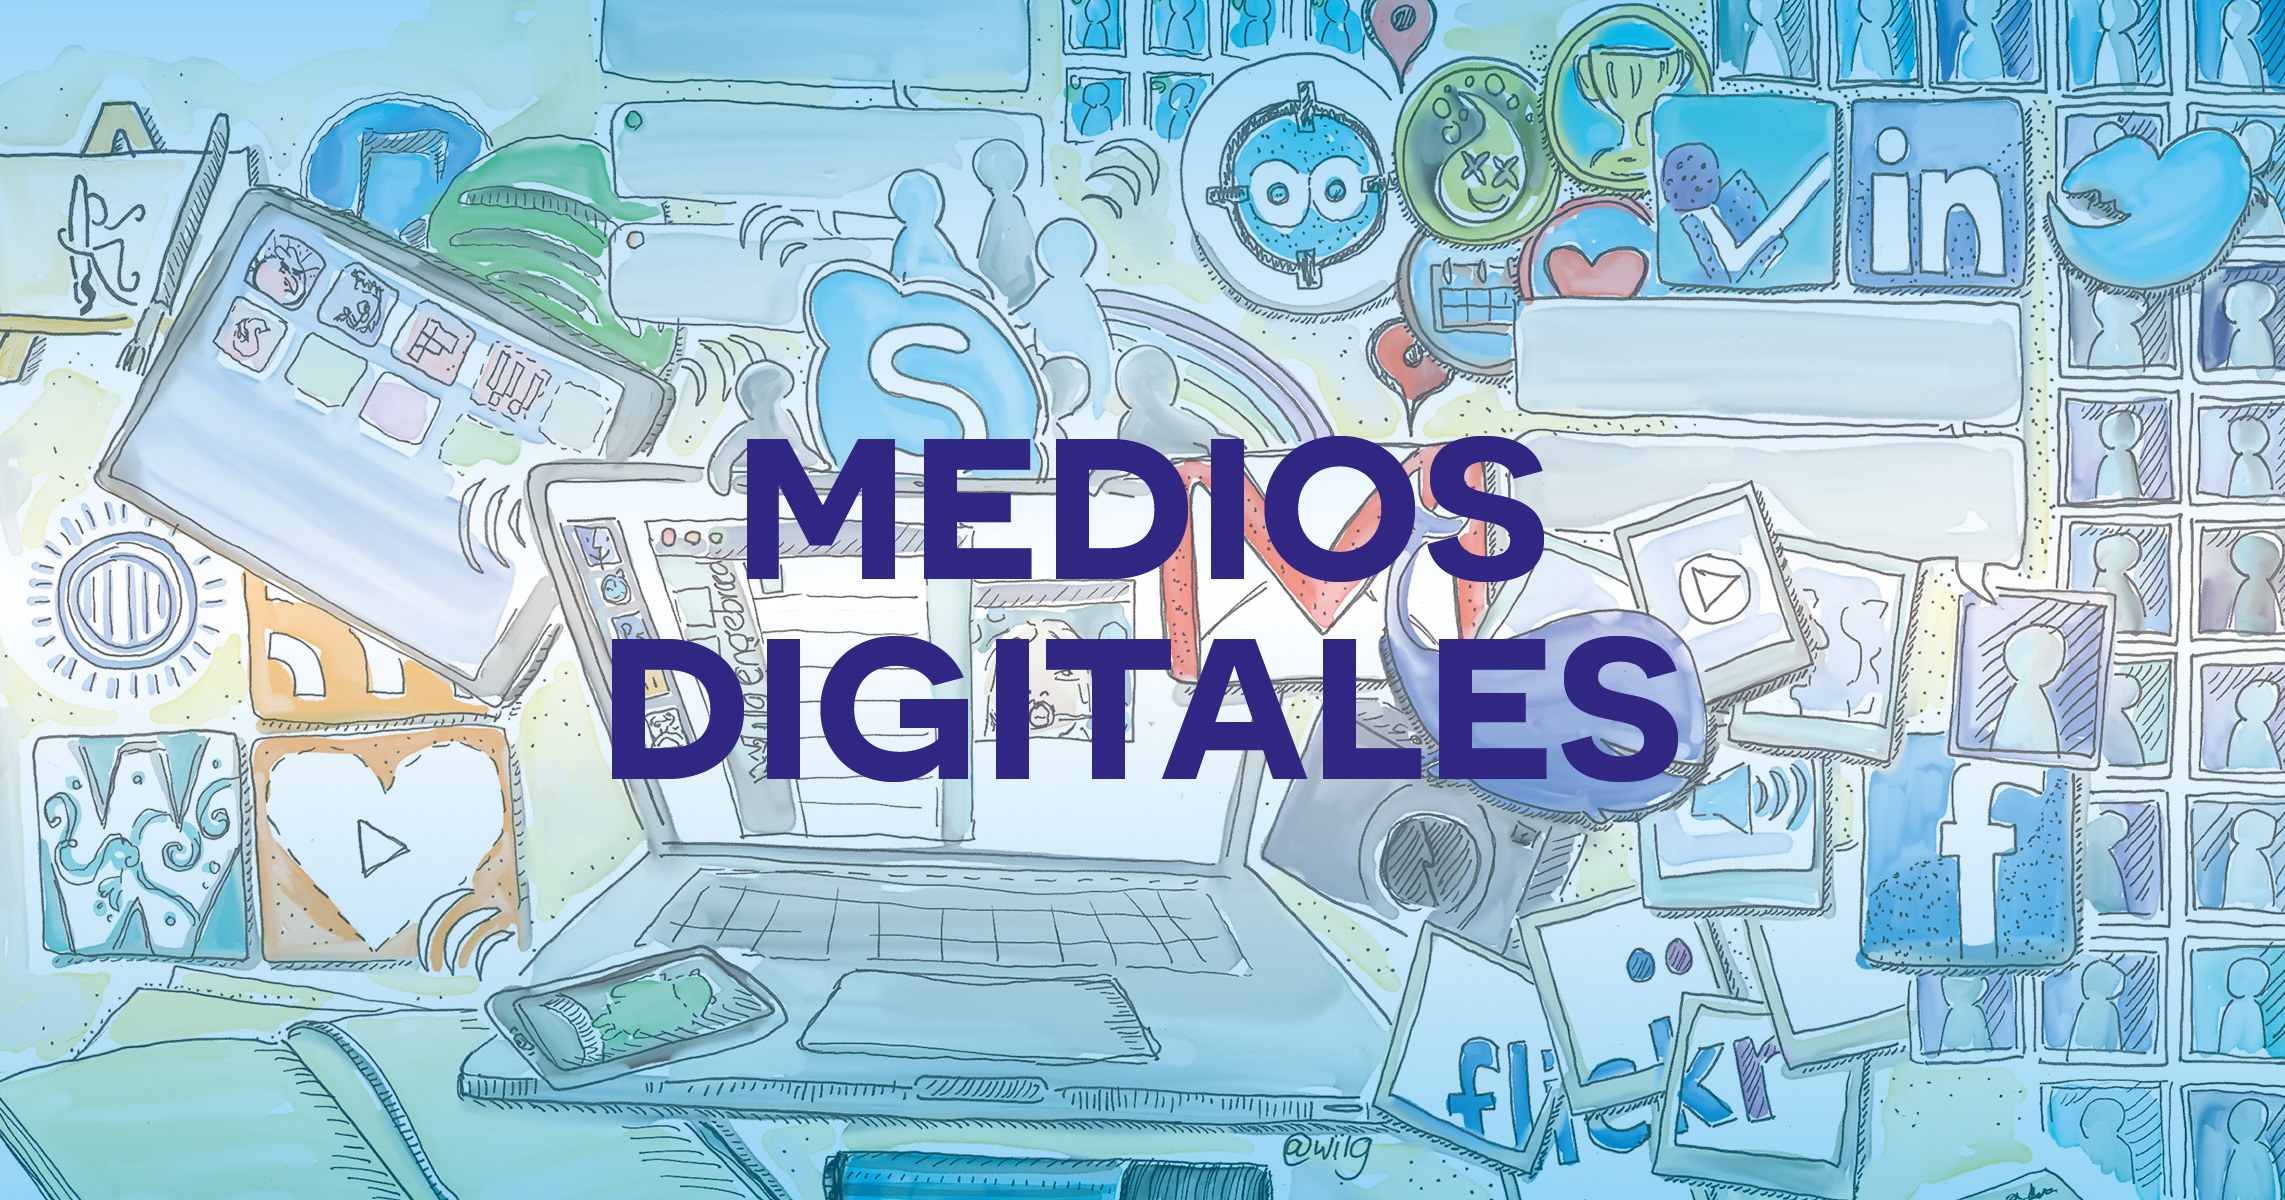 BP - medios digitales